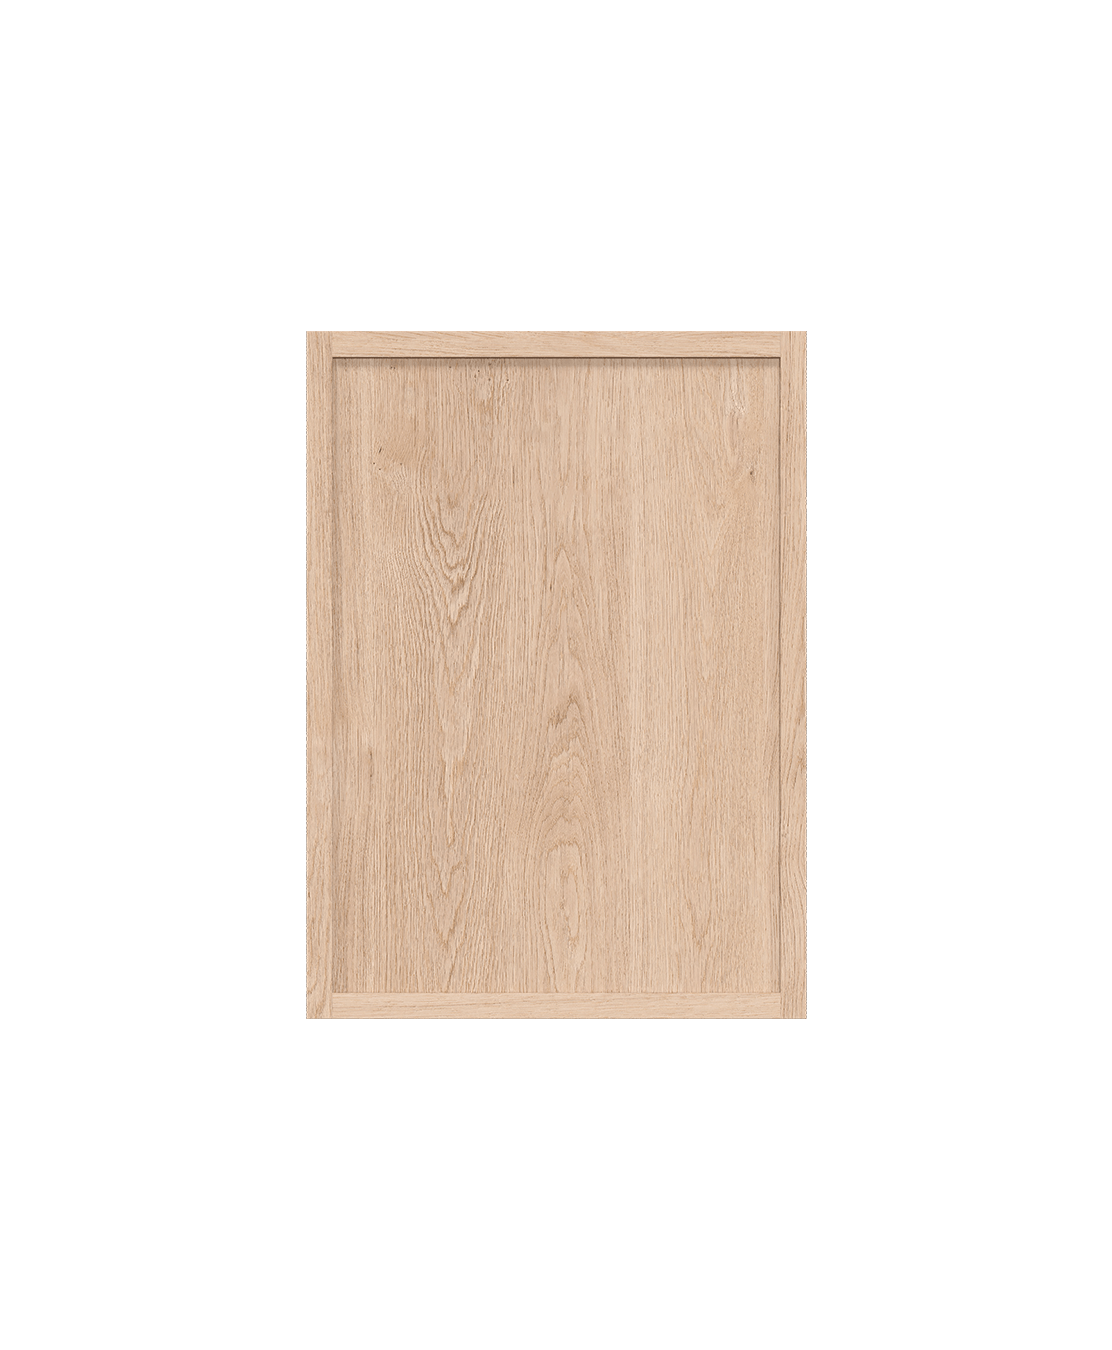 coquo radix white oak solid wood modular 2 glass doors wall upper kitchen cabinet 12 inch C1-W-2412-0202-NA